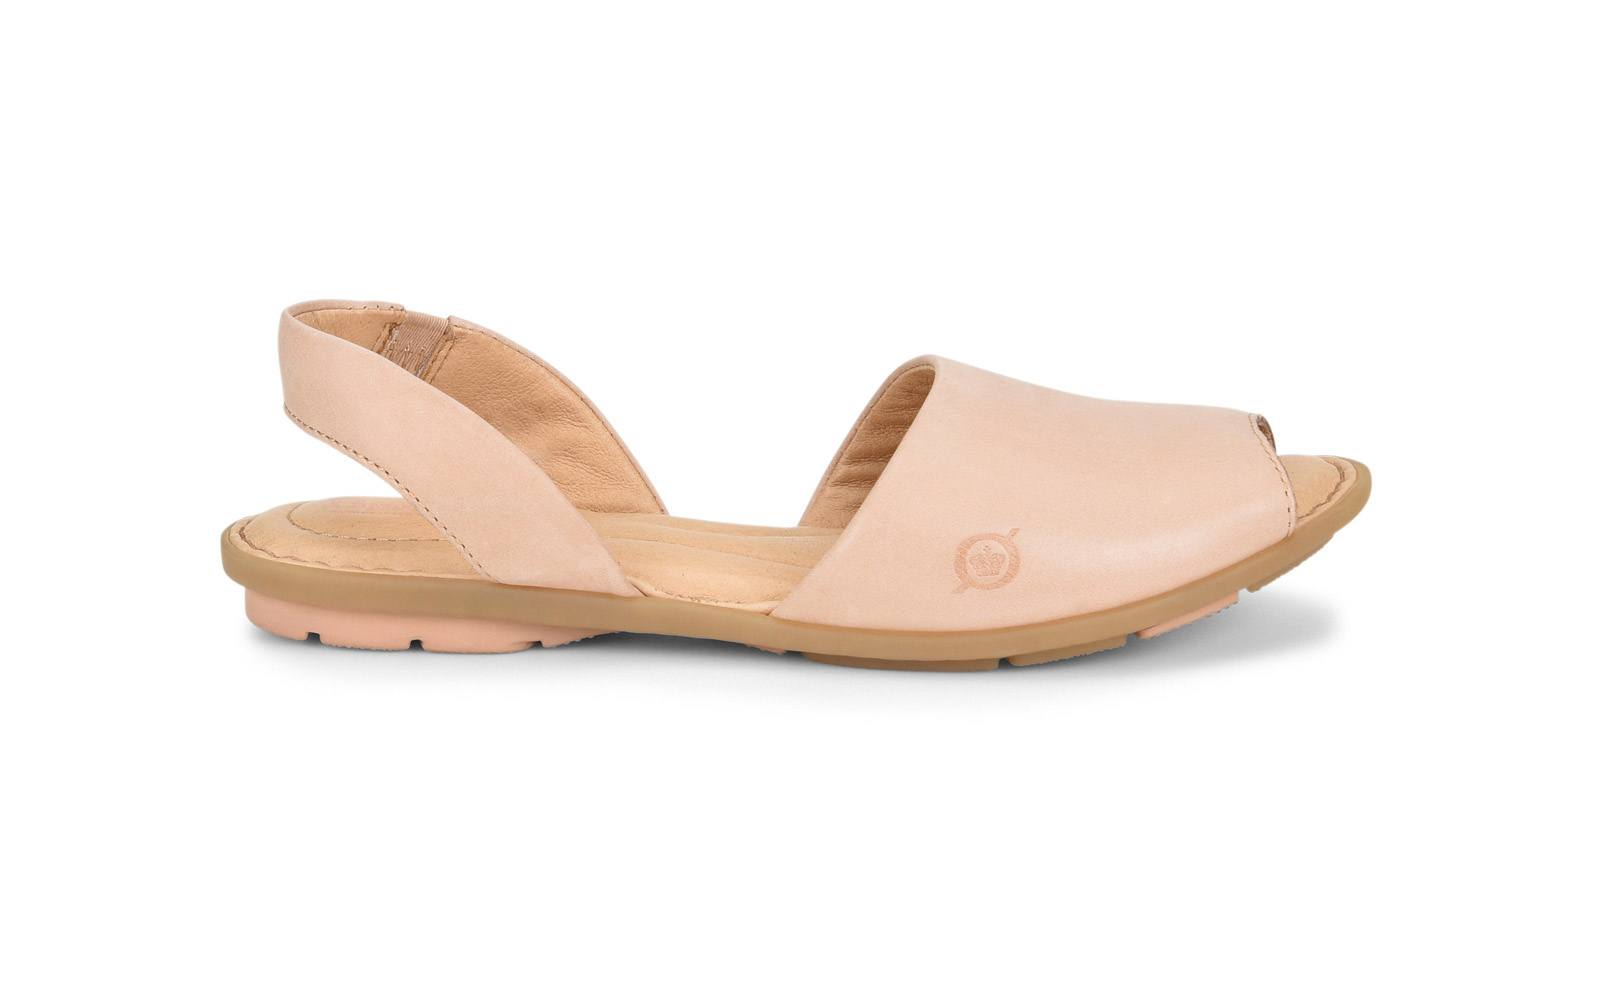 226661124 The Most Comfortable Walking Sandals for Women